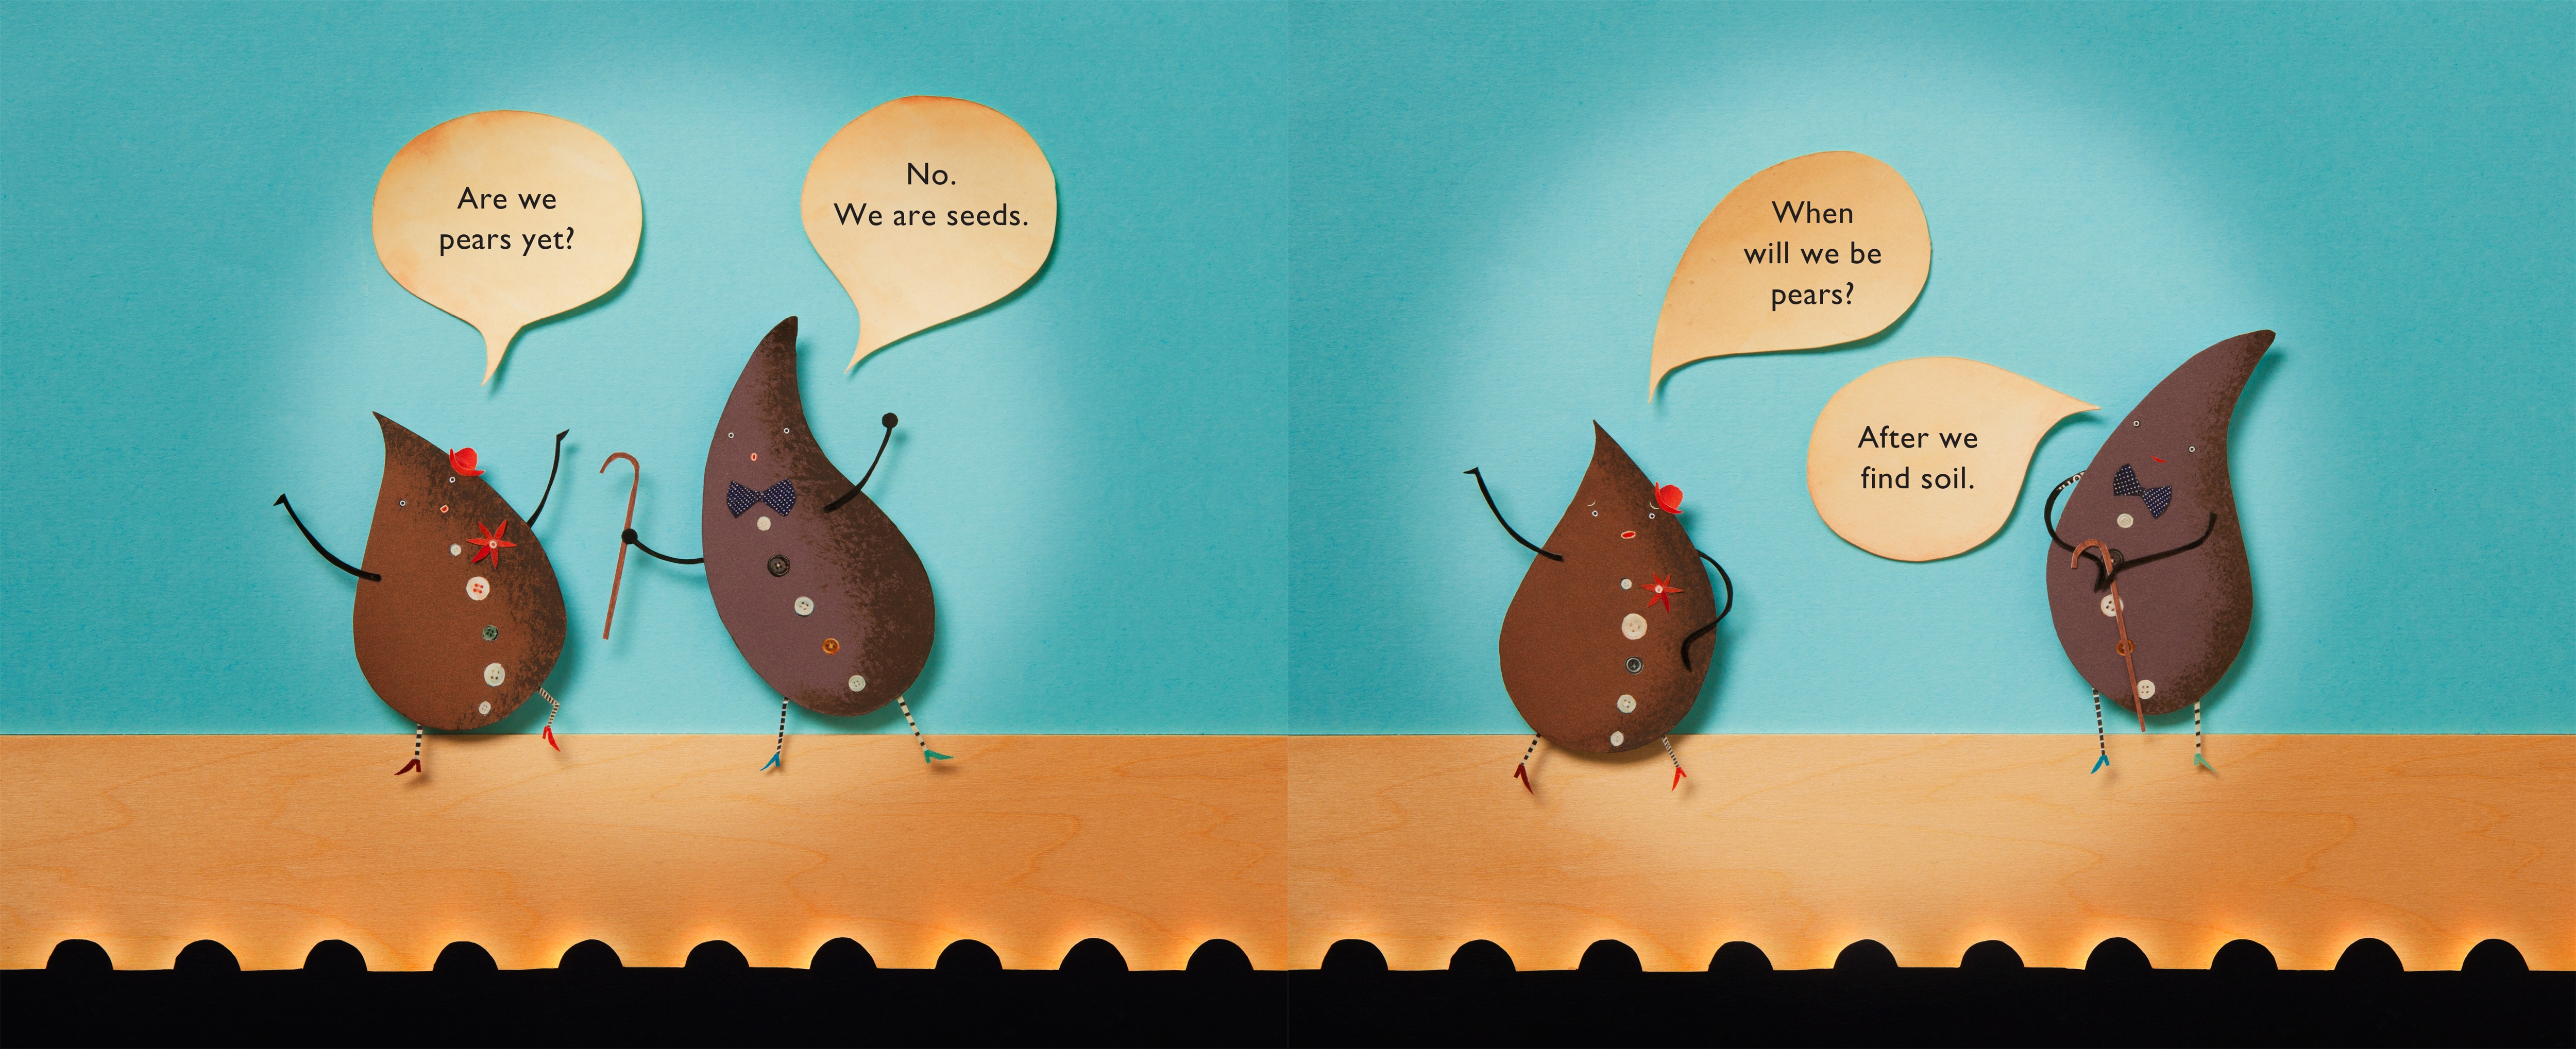 celebrate-picture-books-picture-book-review-are-we-pears-yet-seeds